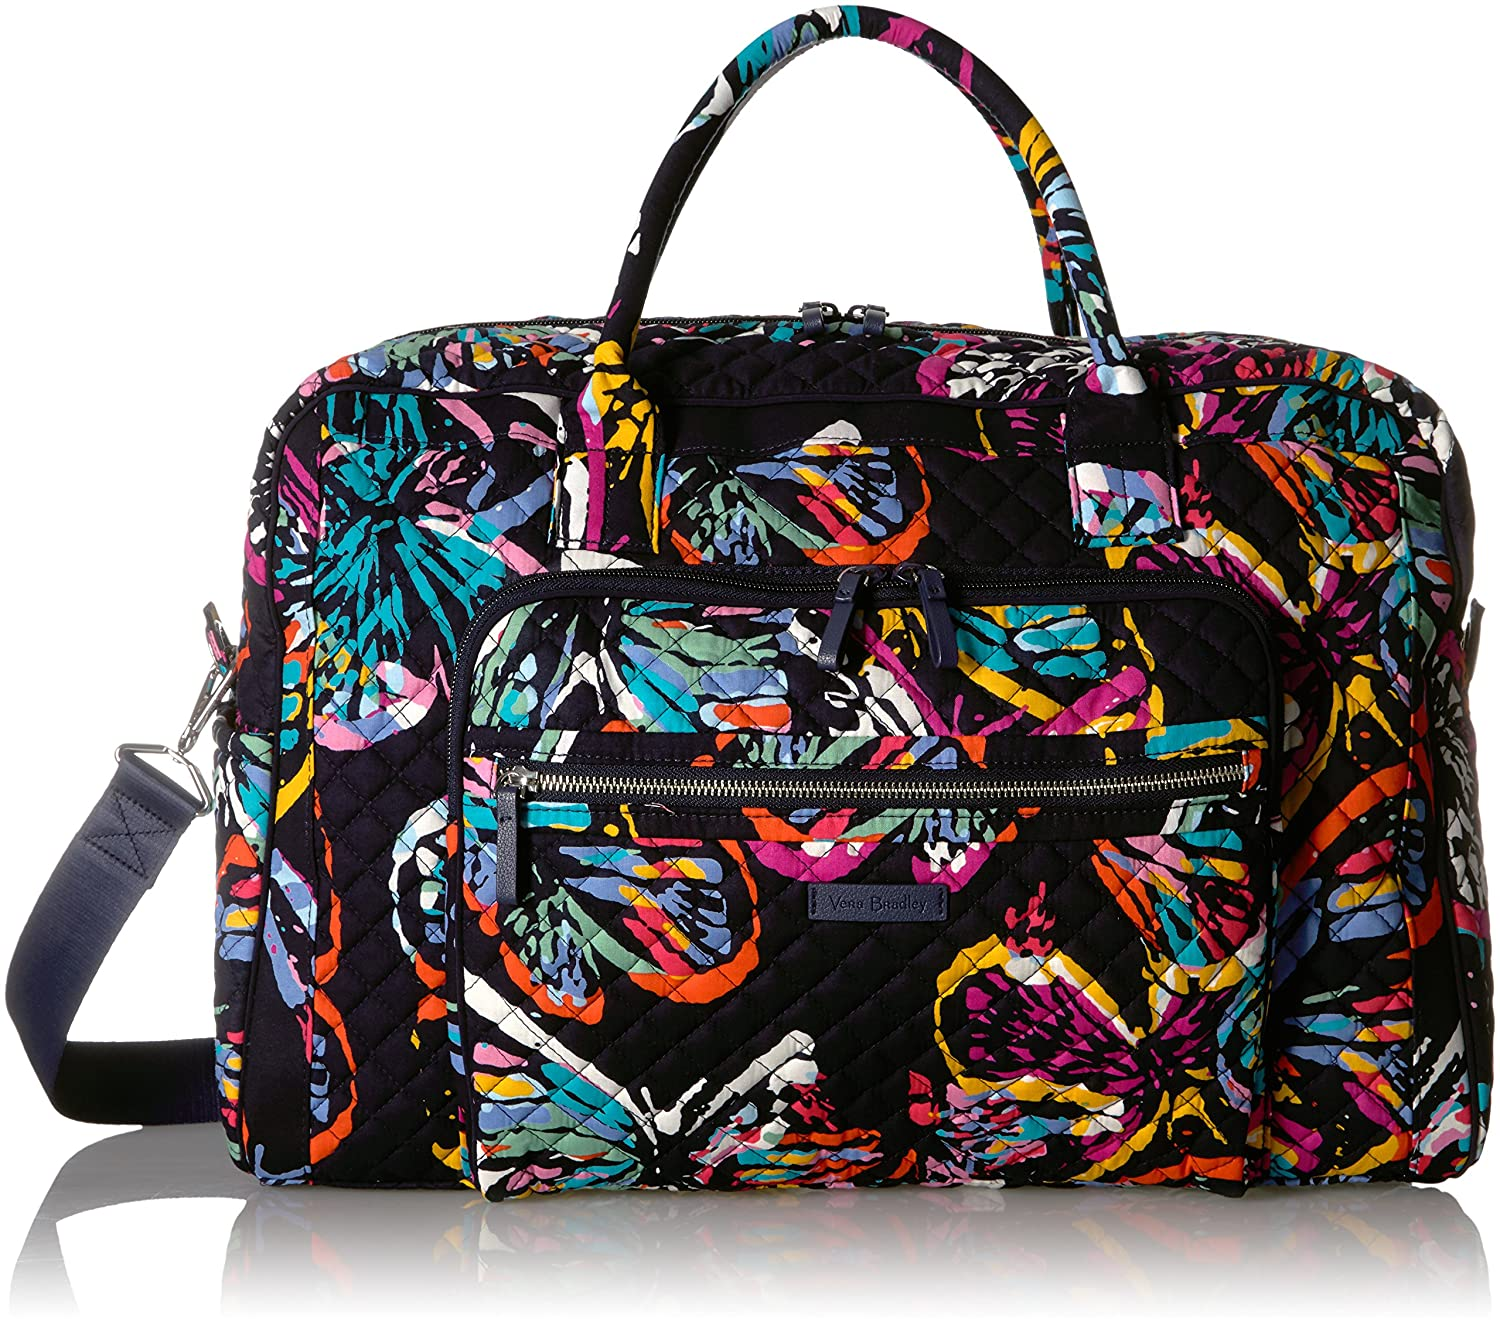 Vera Bradley Iconic Weekender Travel Bag, Signature Cotton Butterfly Flutter 22235-I81